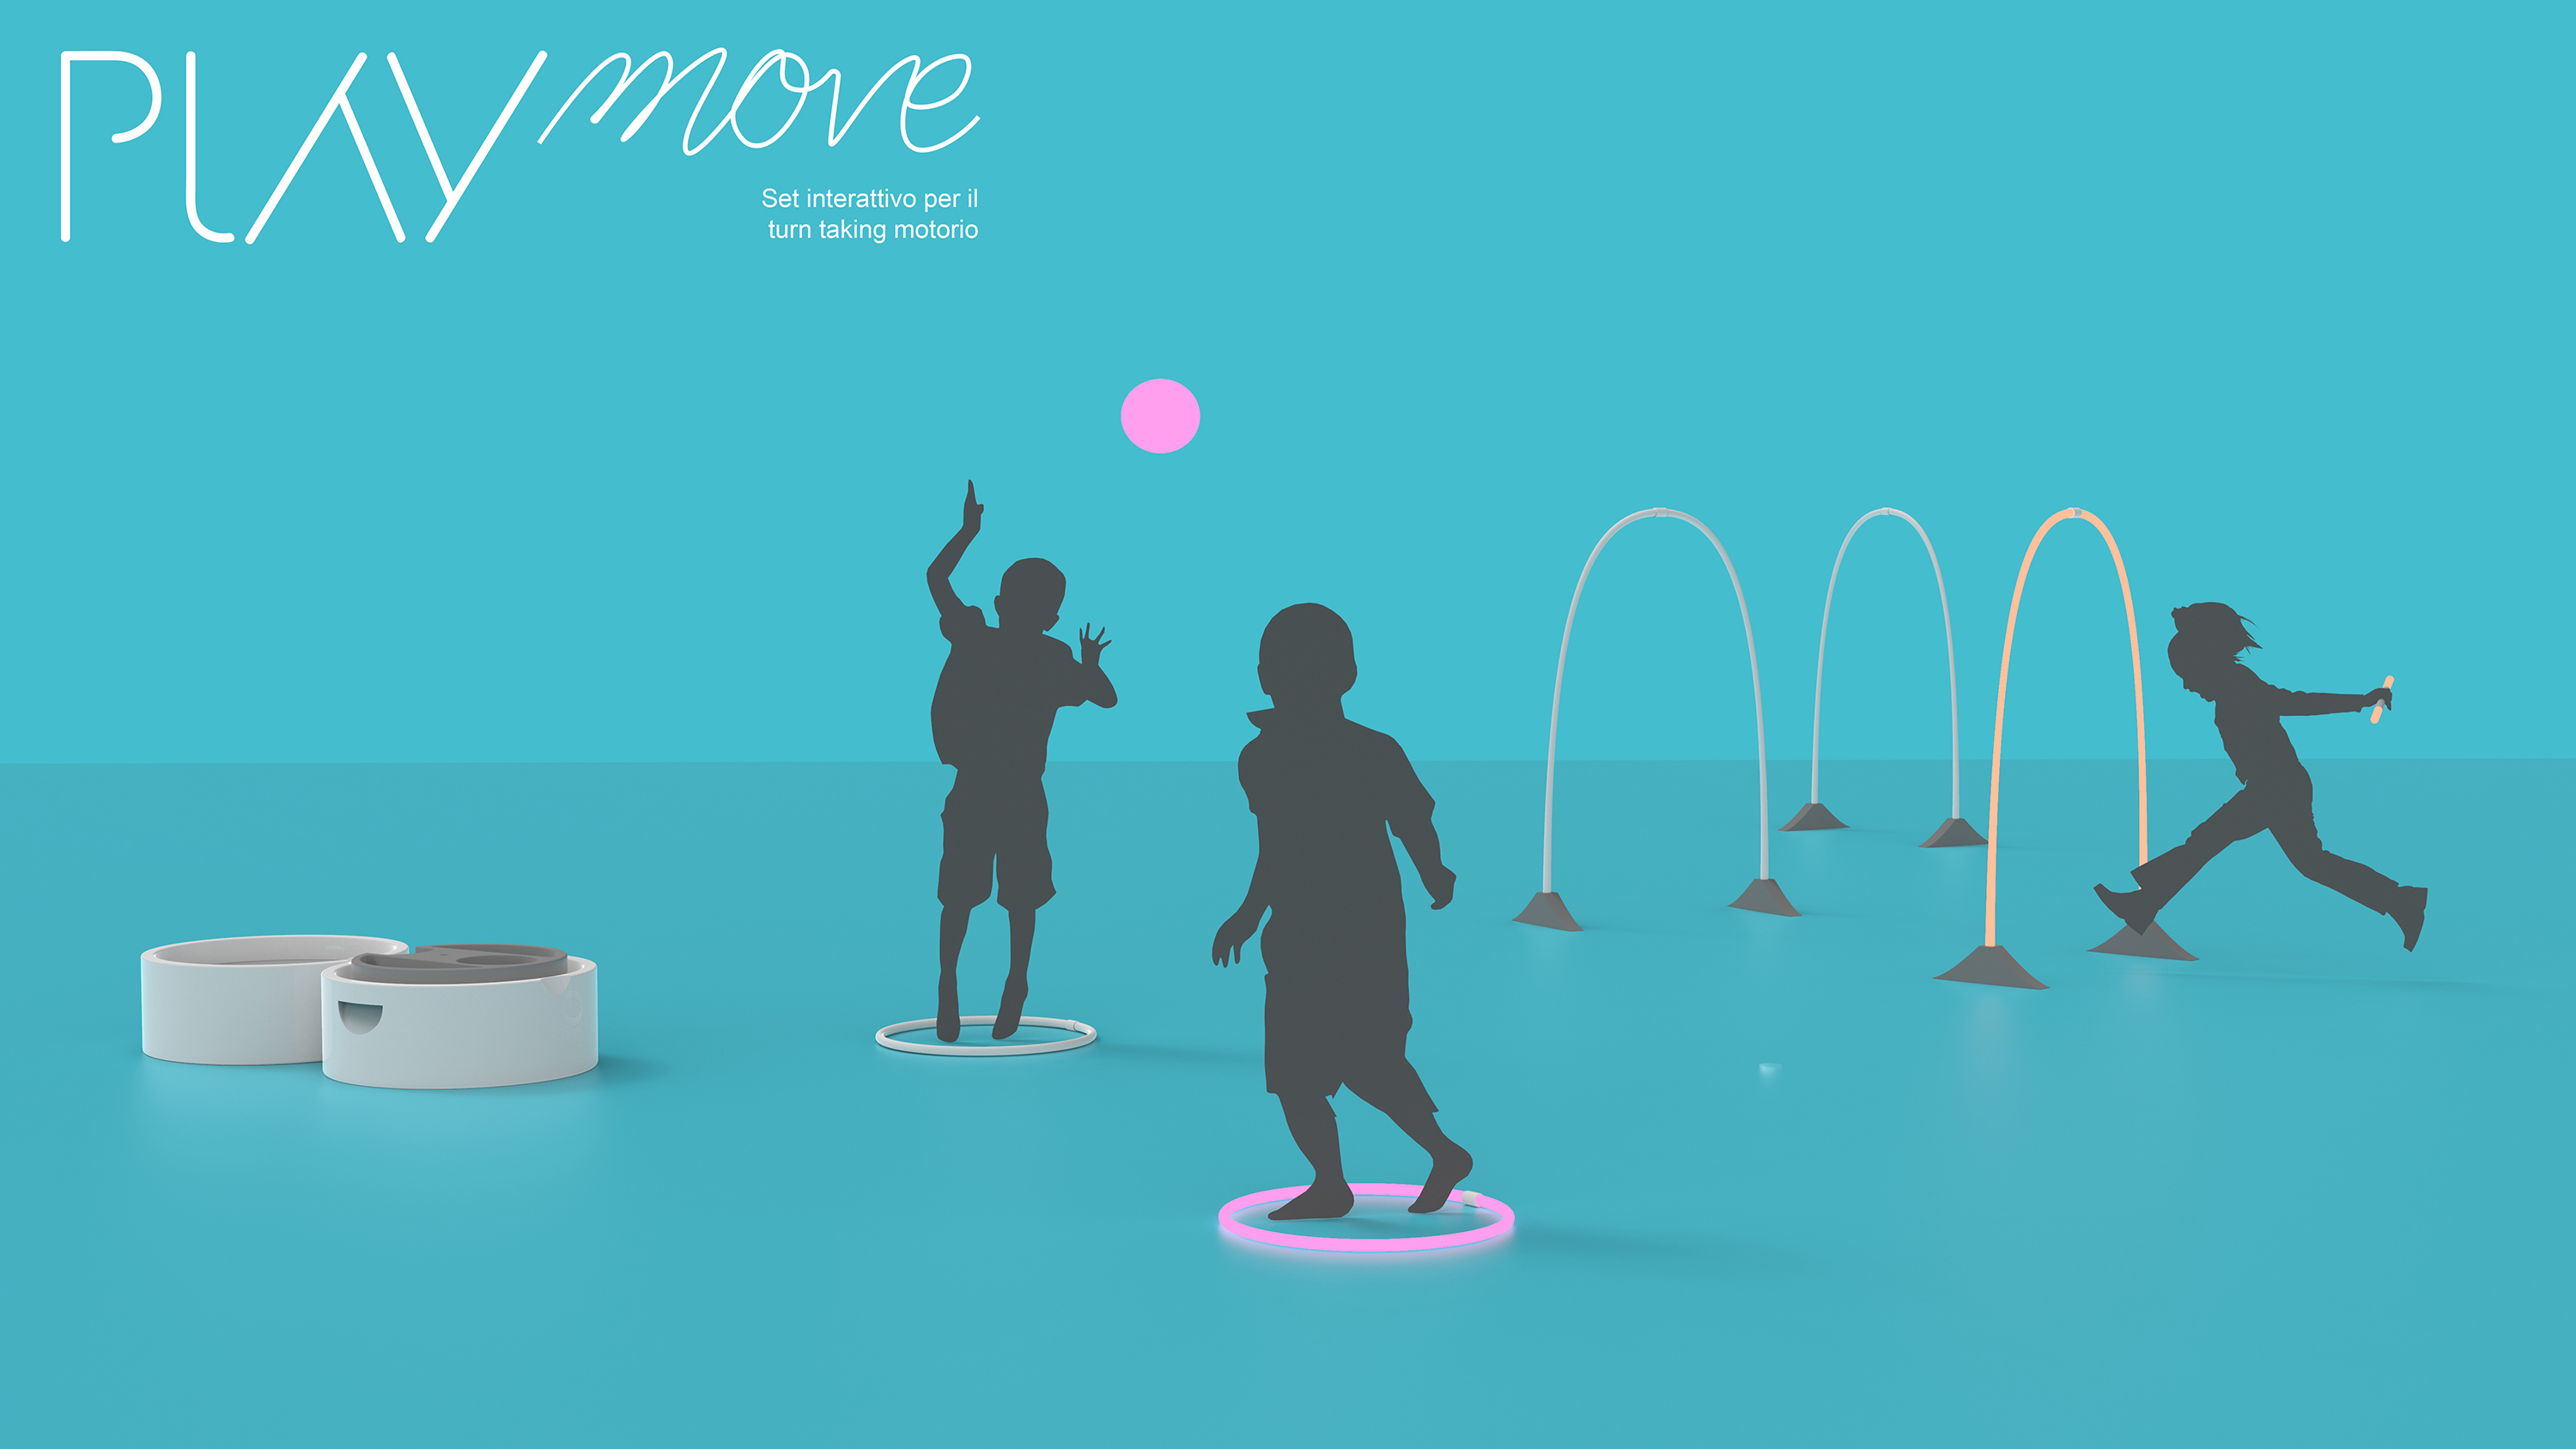 Play/Move